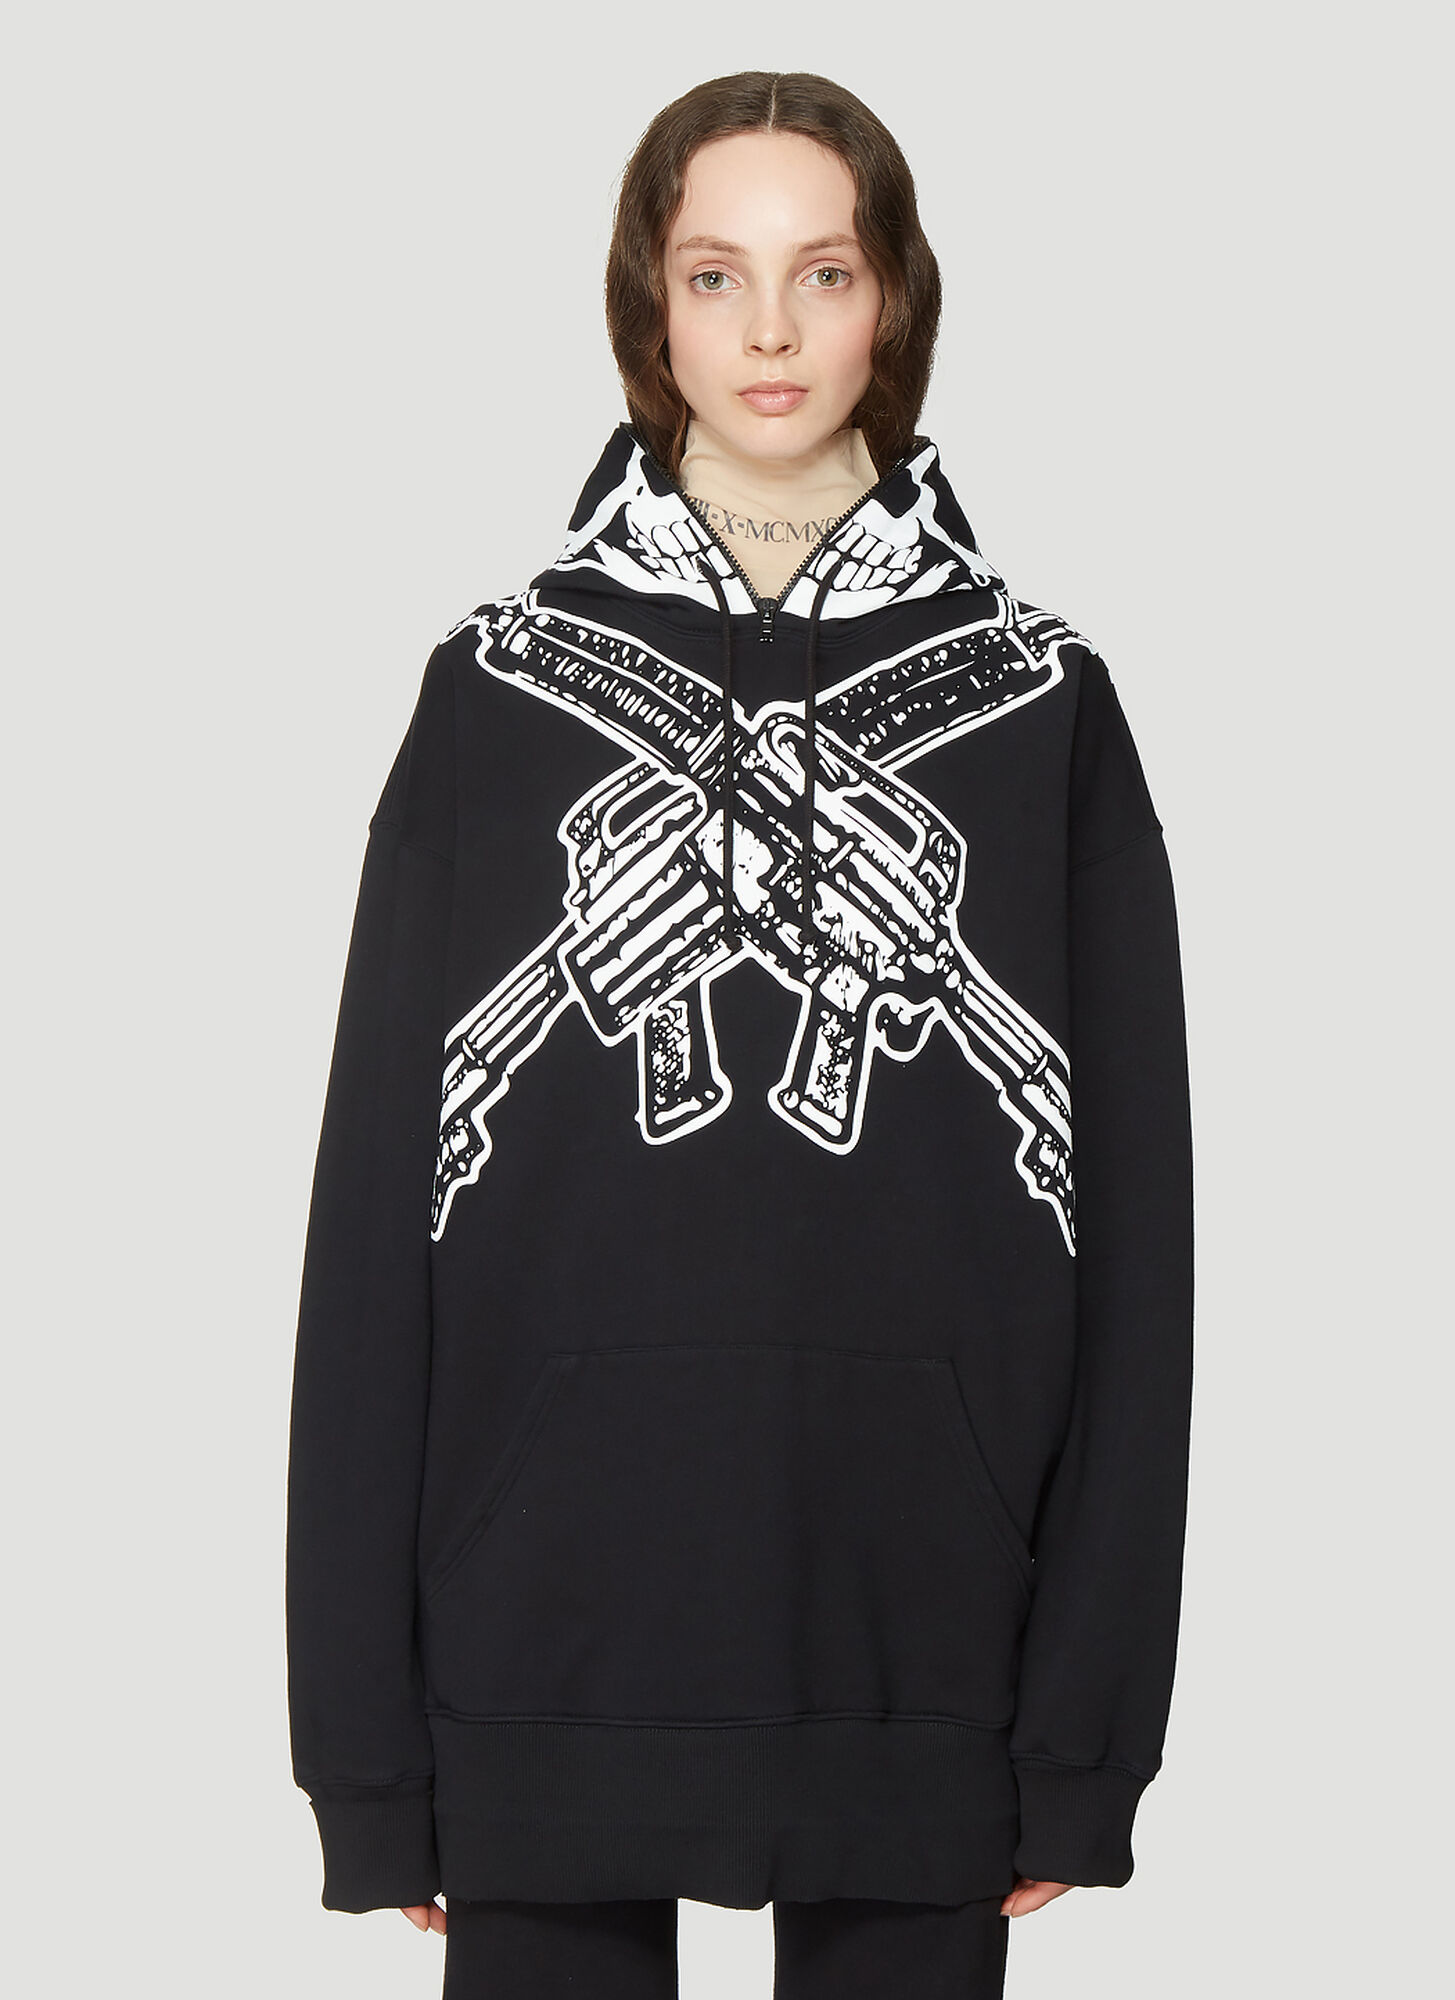 Vetements Oversized Skull Print Hooded Sweatshirt in Black